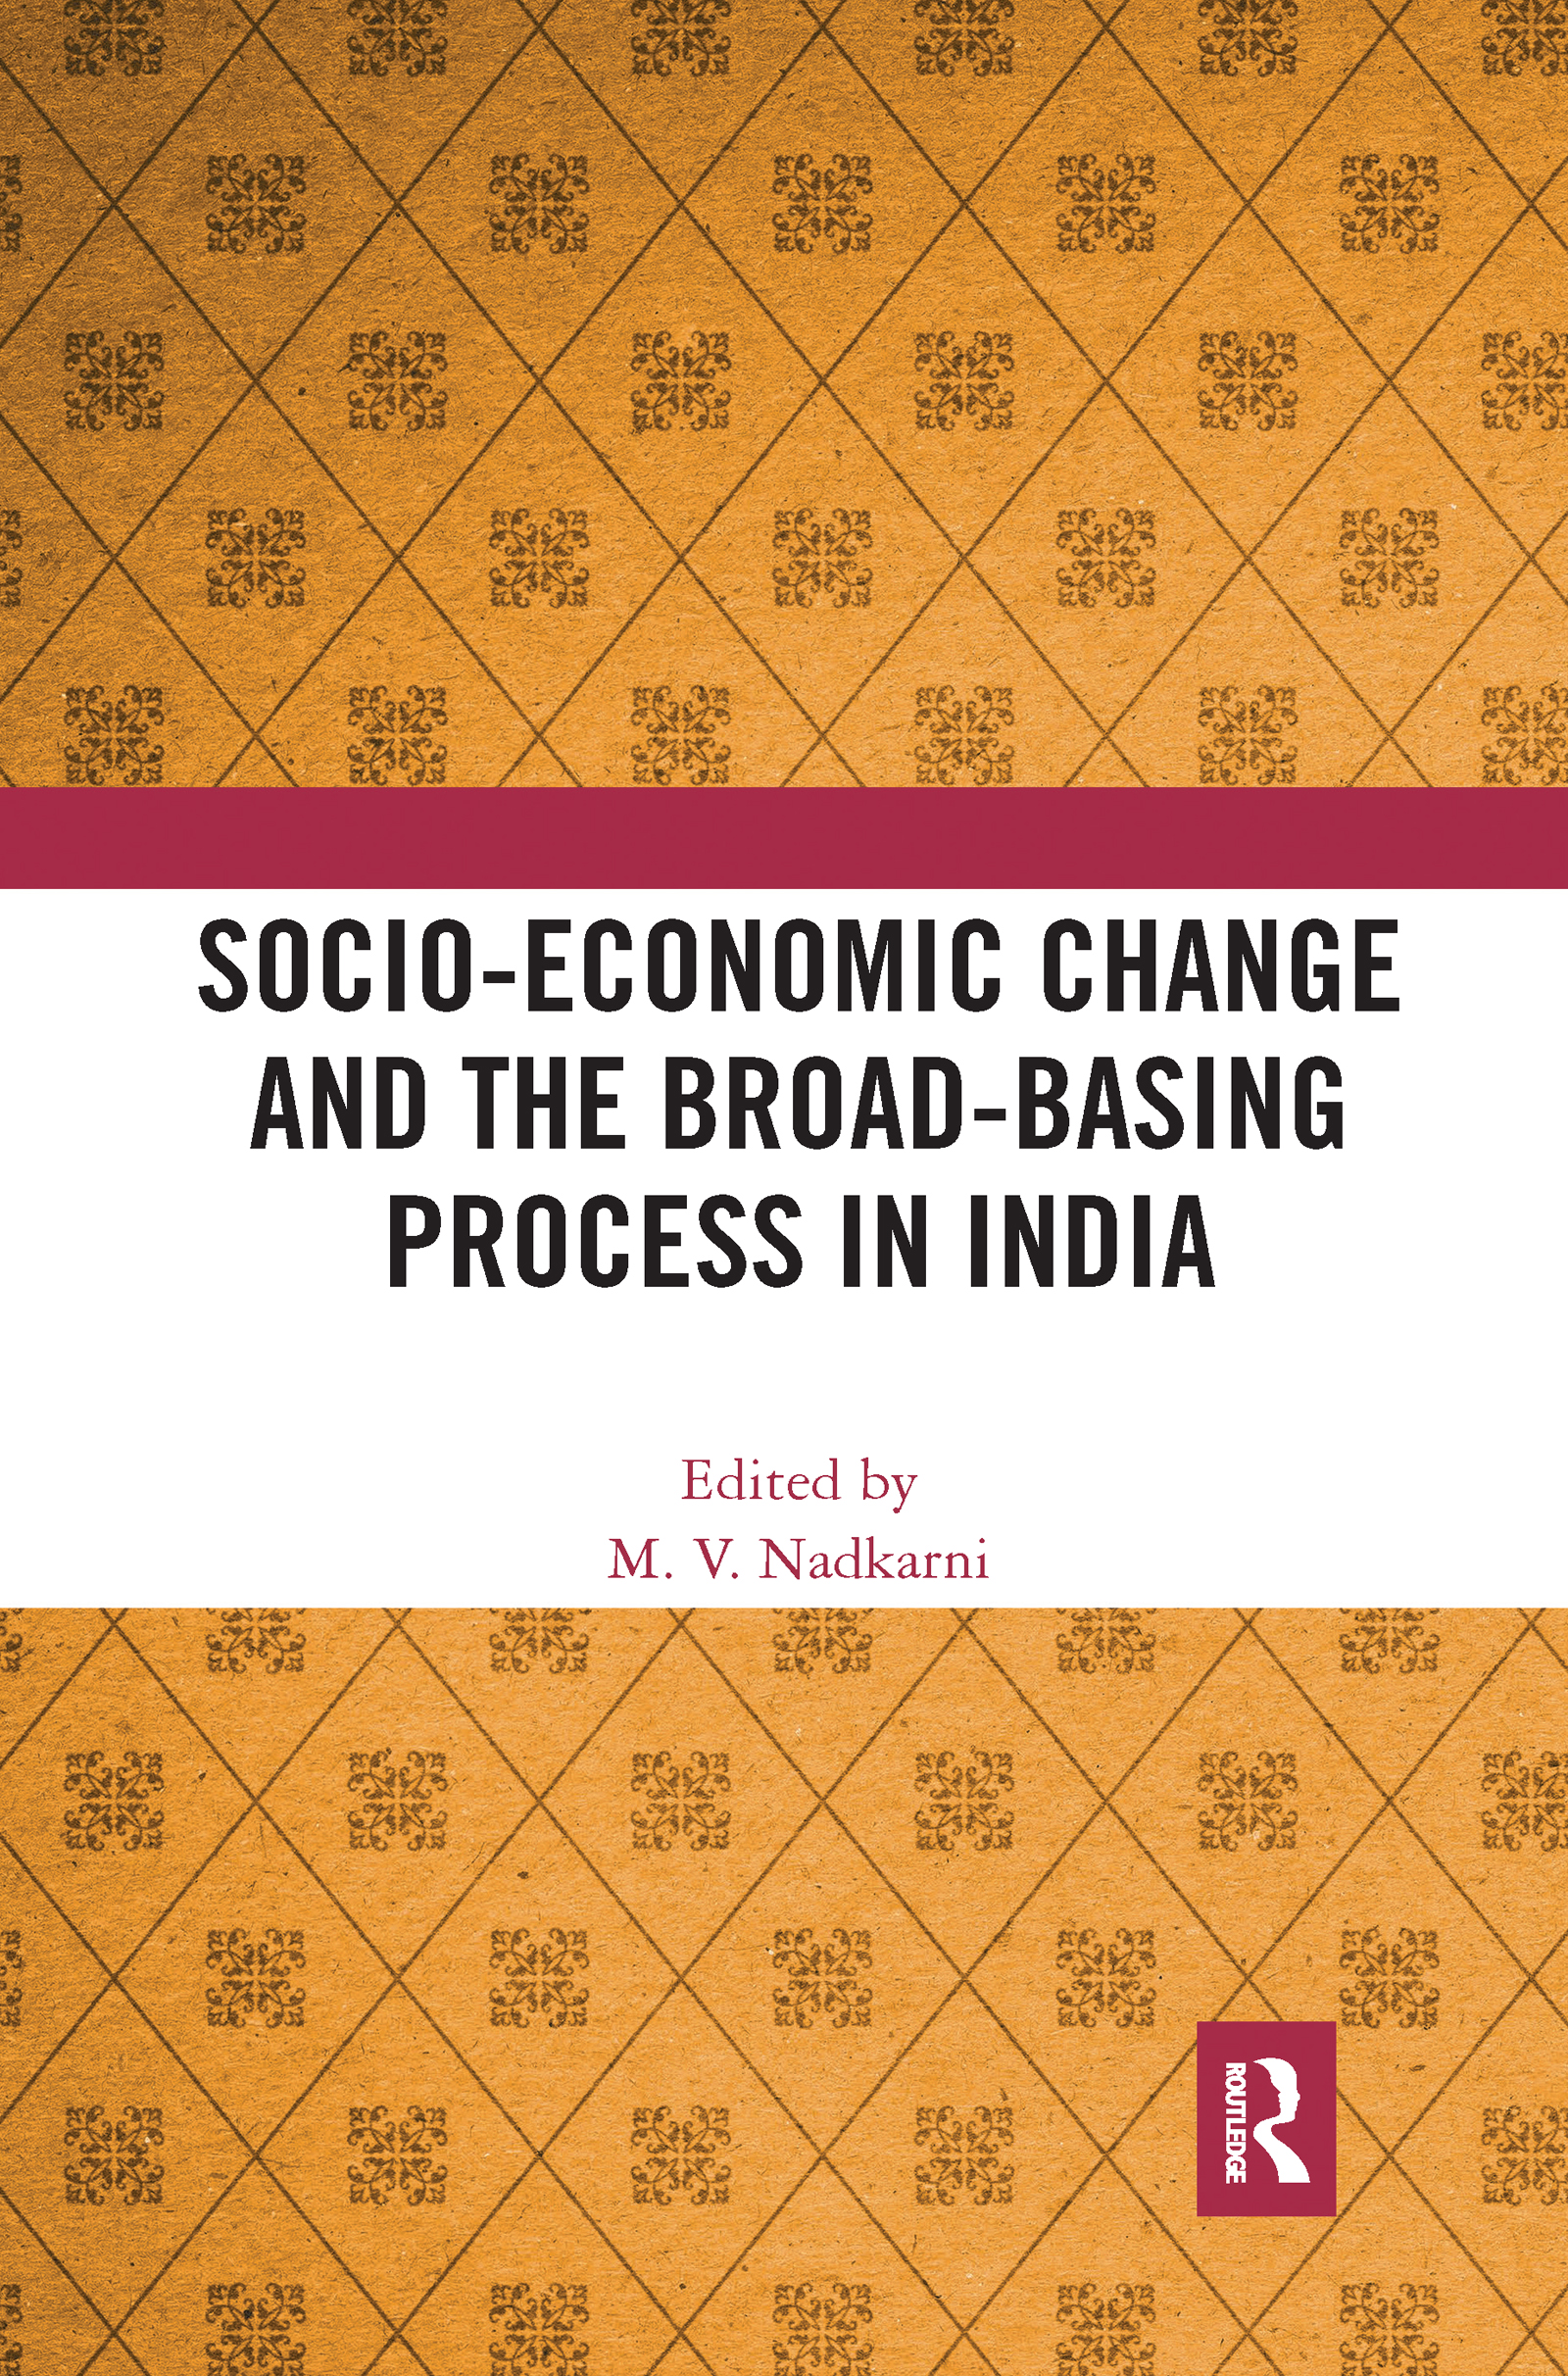 Socio-Economic Change and the Broad-Basing Process in India